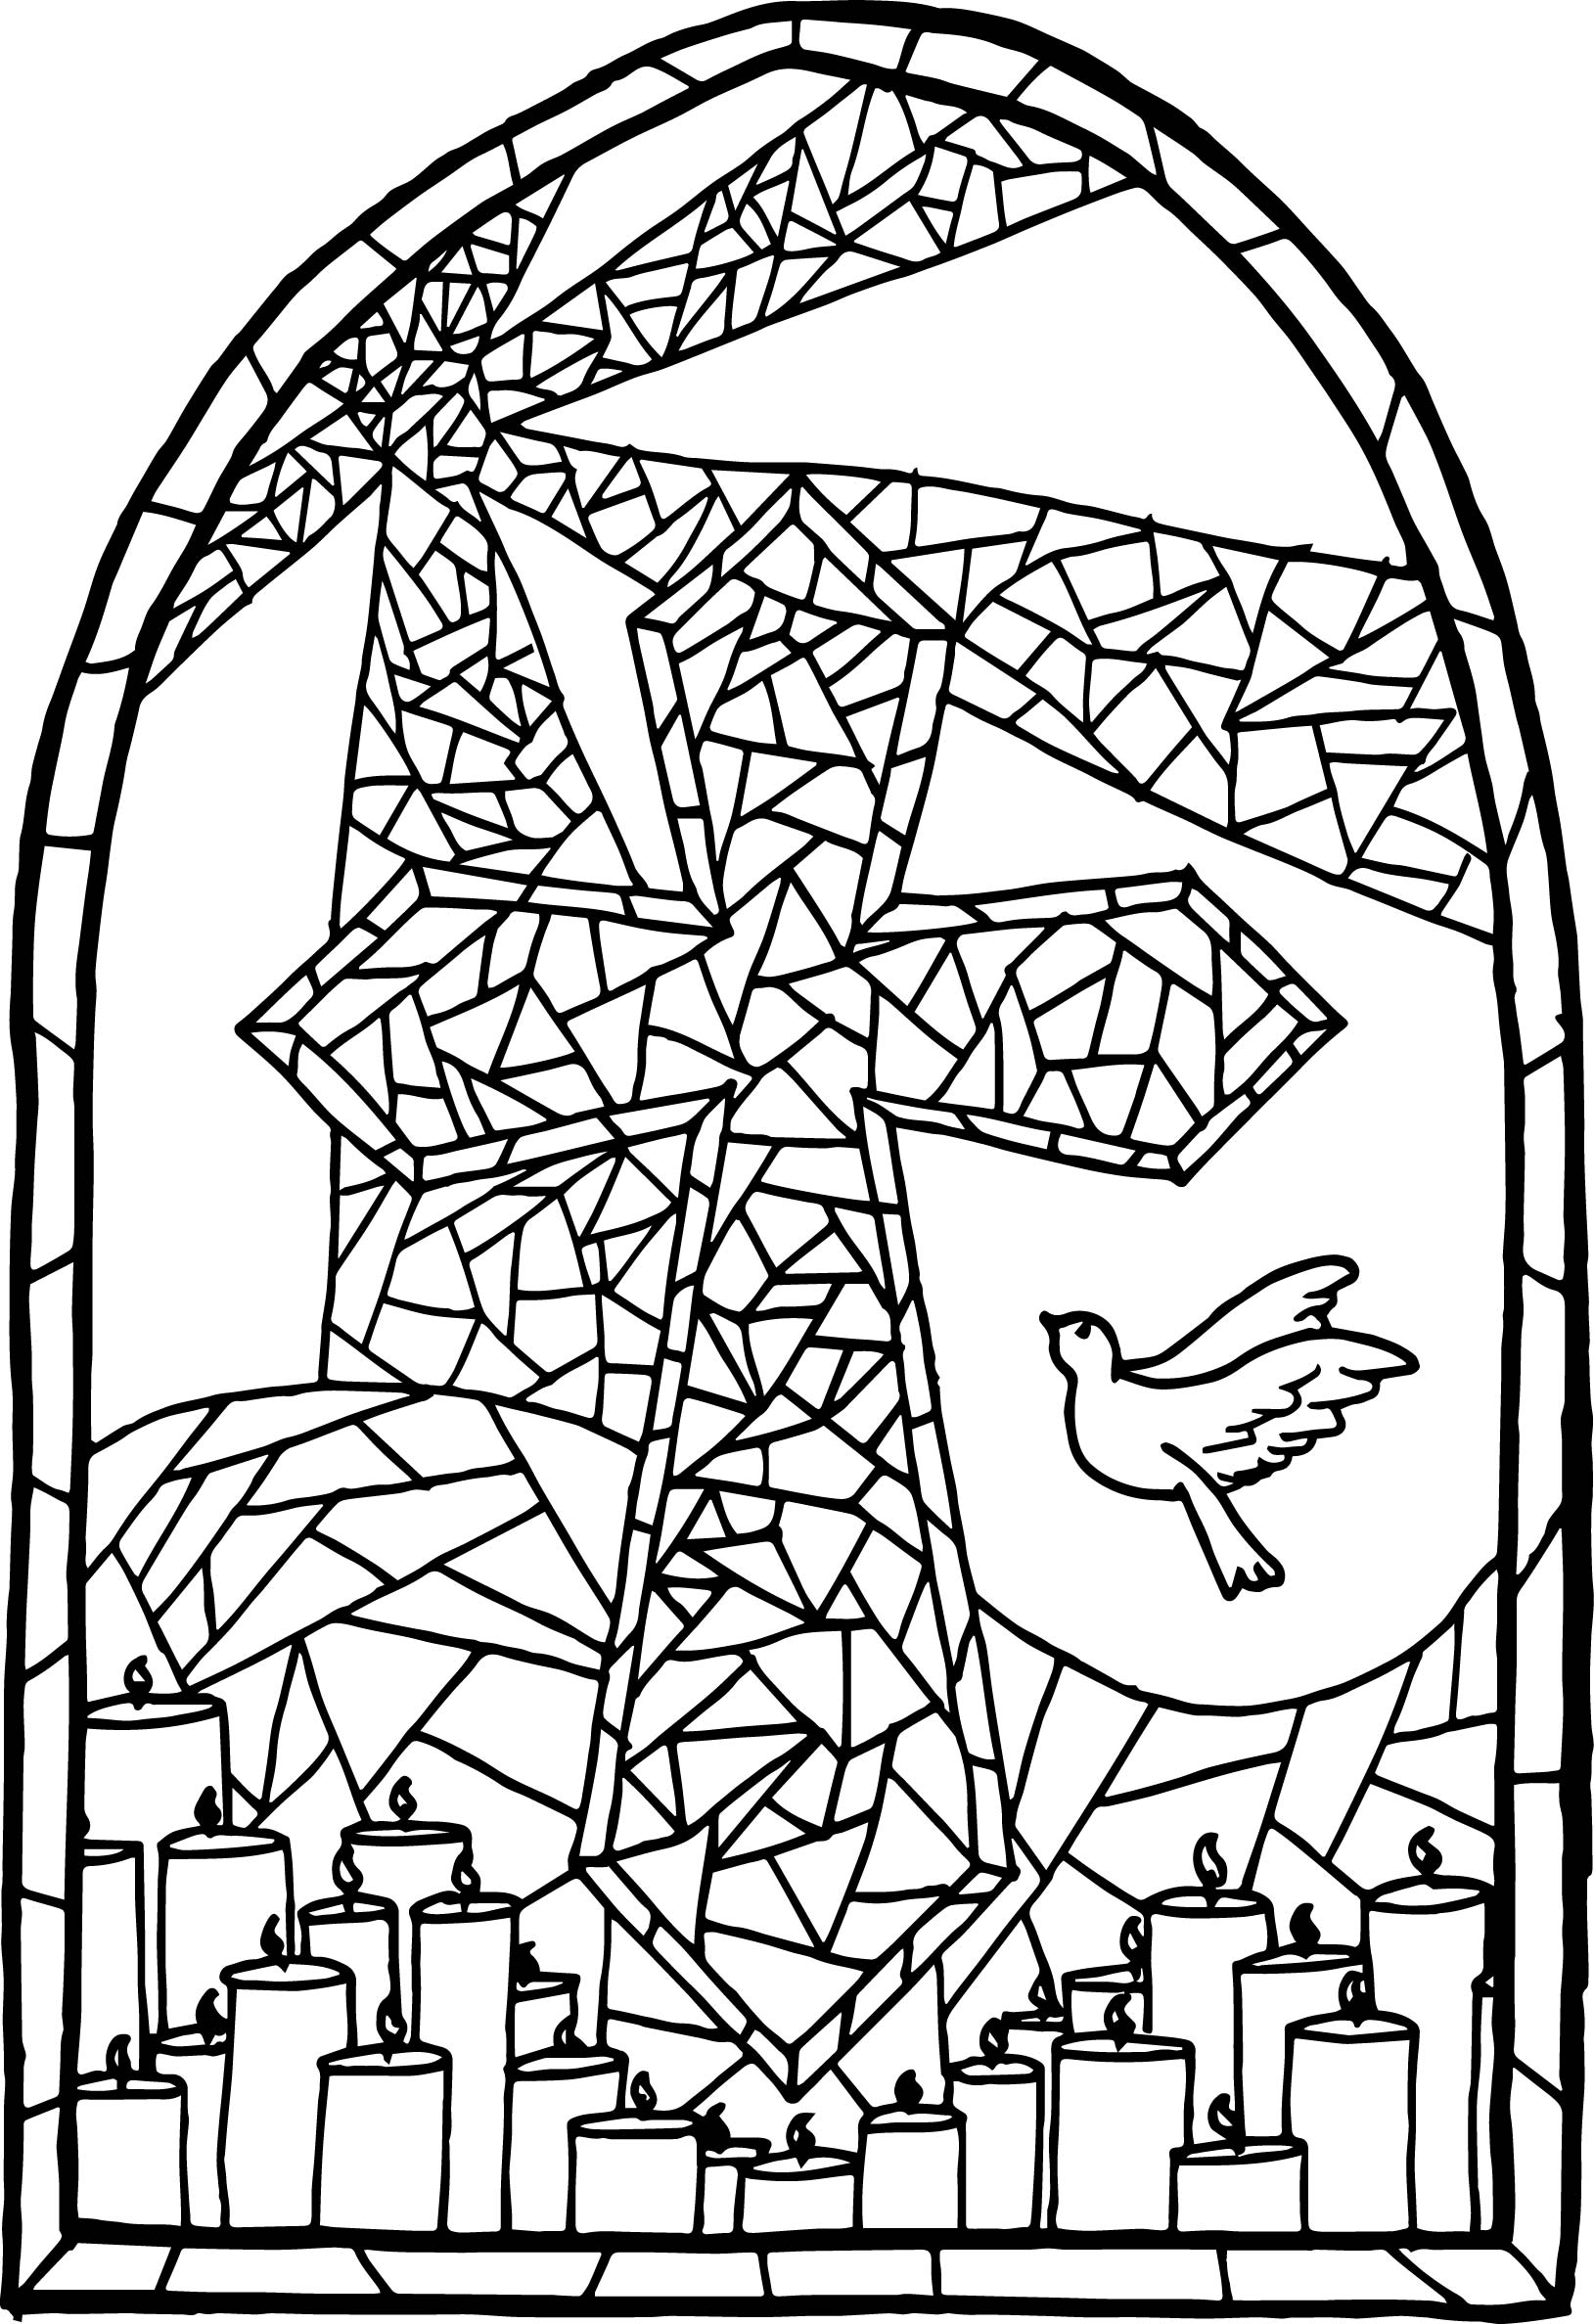 Stained Glass Window and Cross Coloring Page